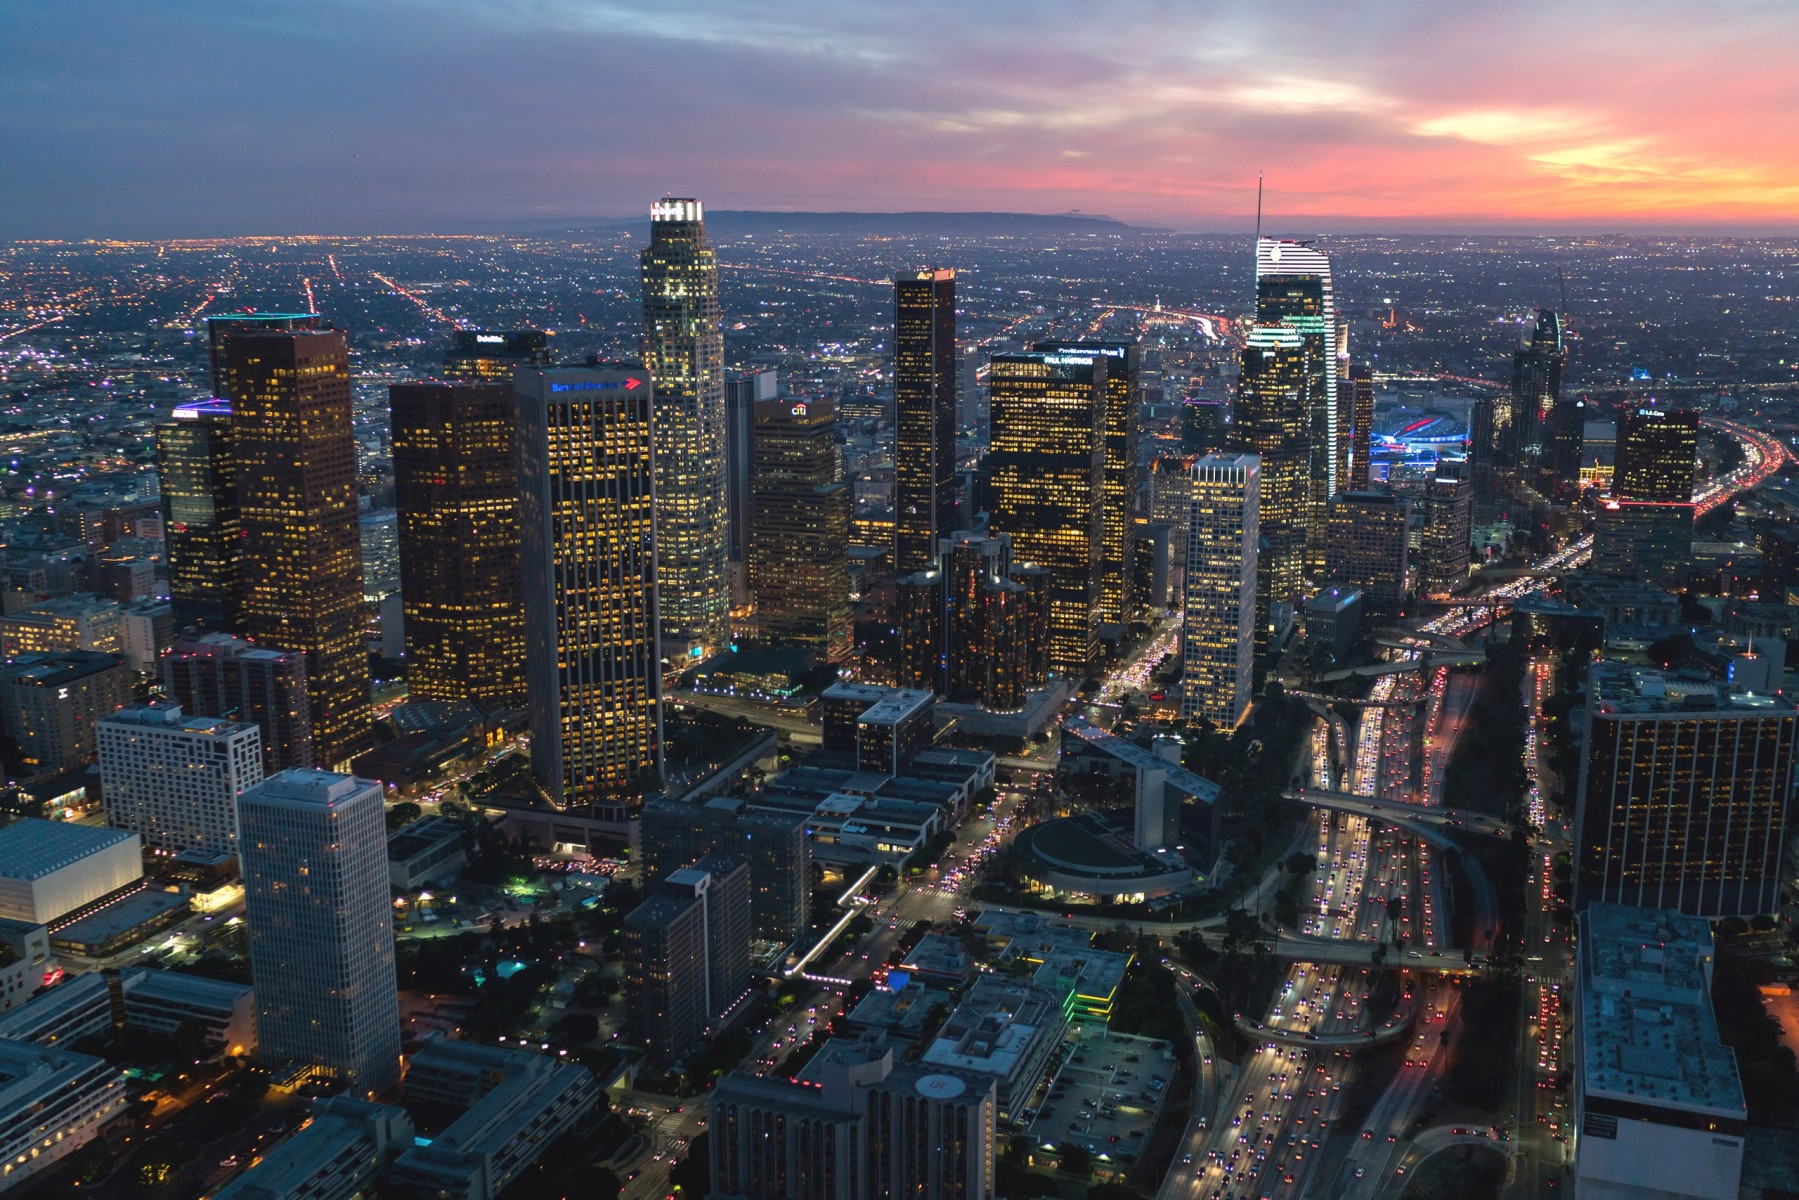 Los Angeles_TVILIGHT Smart City Connected Lighting